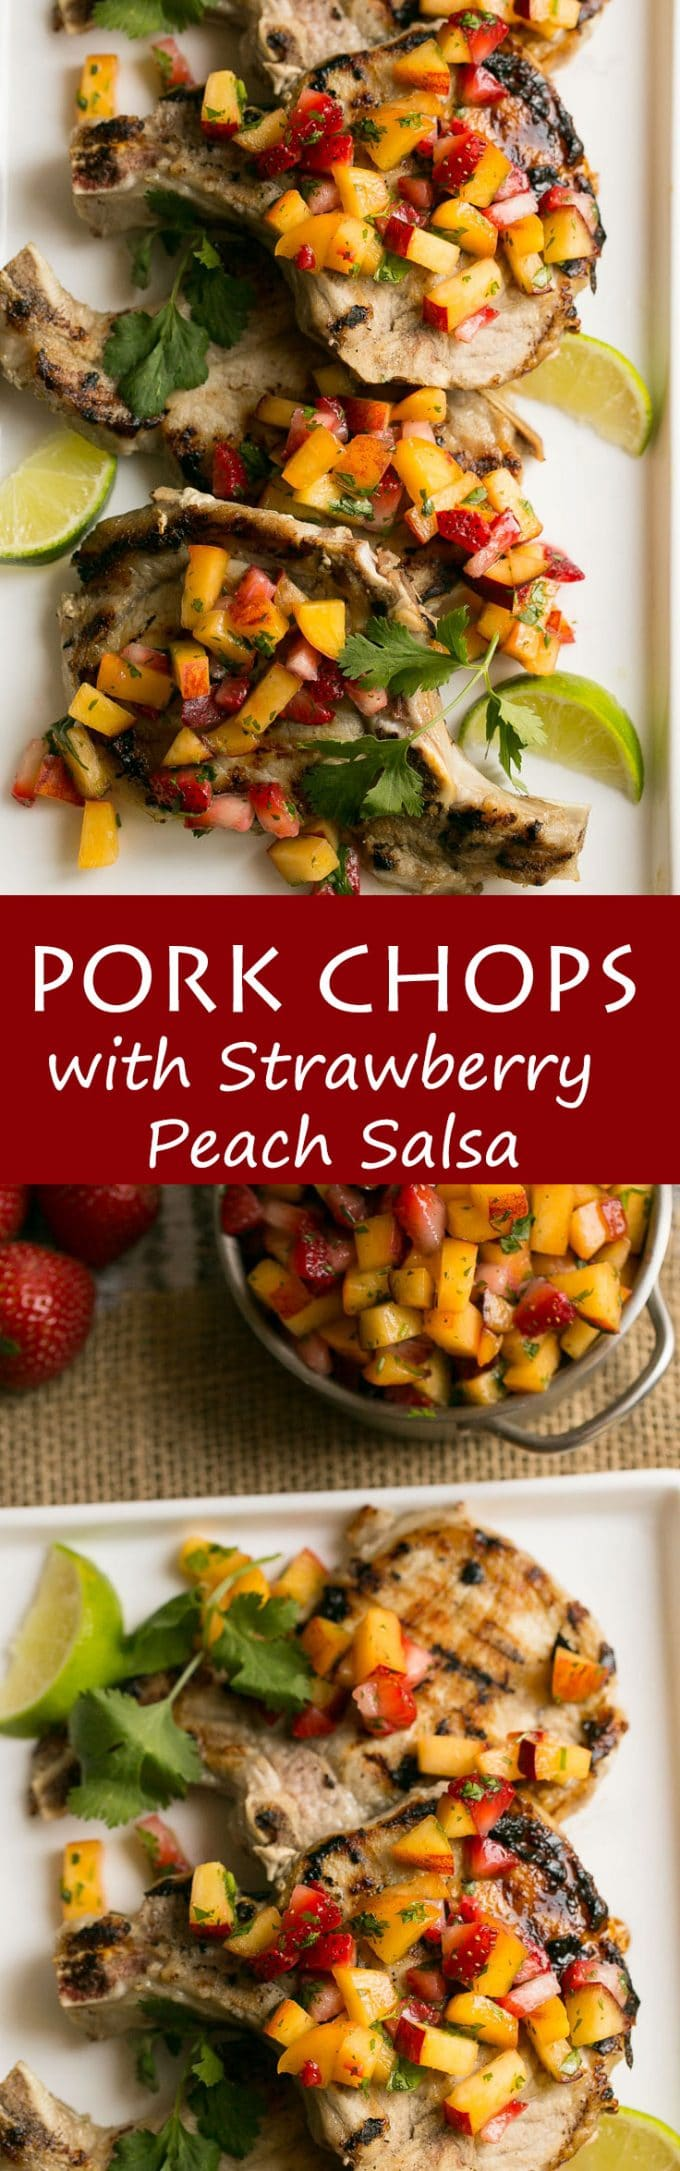 Grilled pork chops with strawberry peach salsa look fancy but are super easy to make.